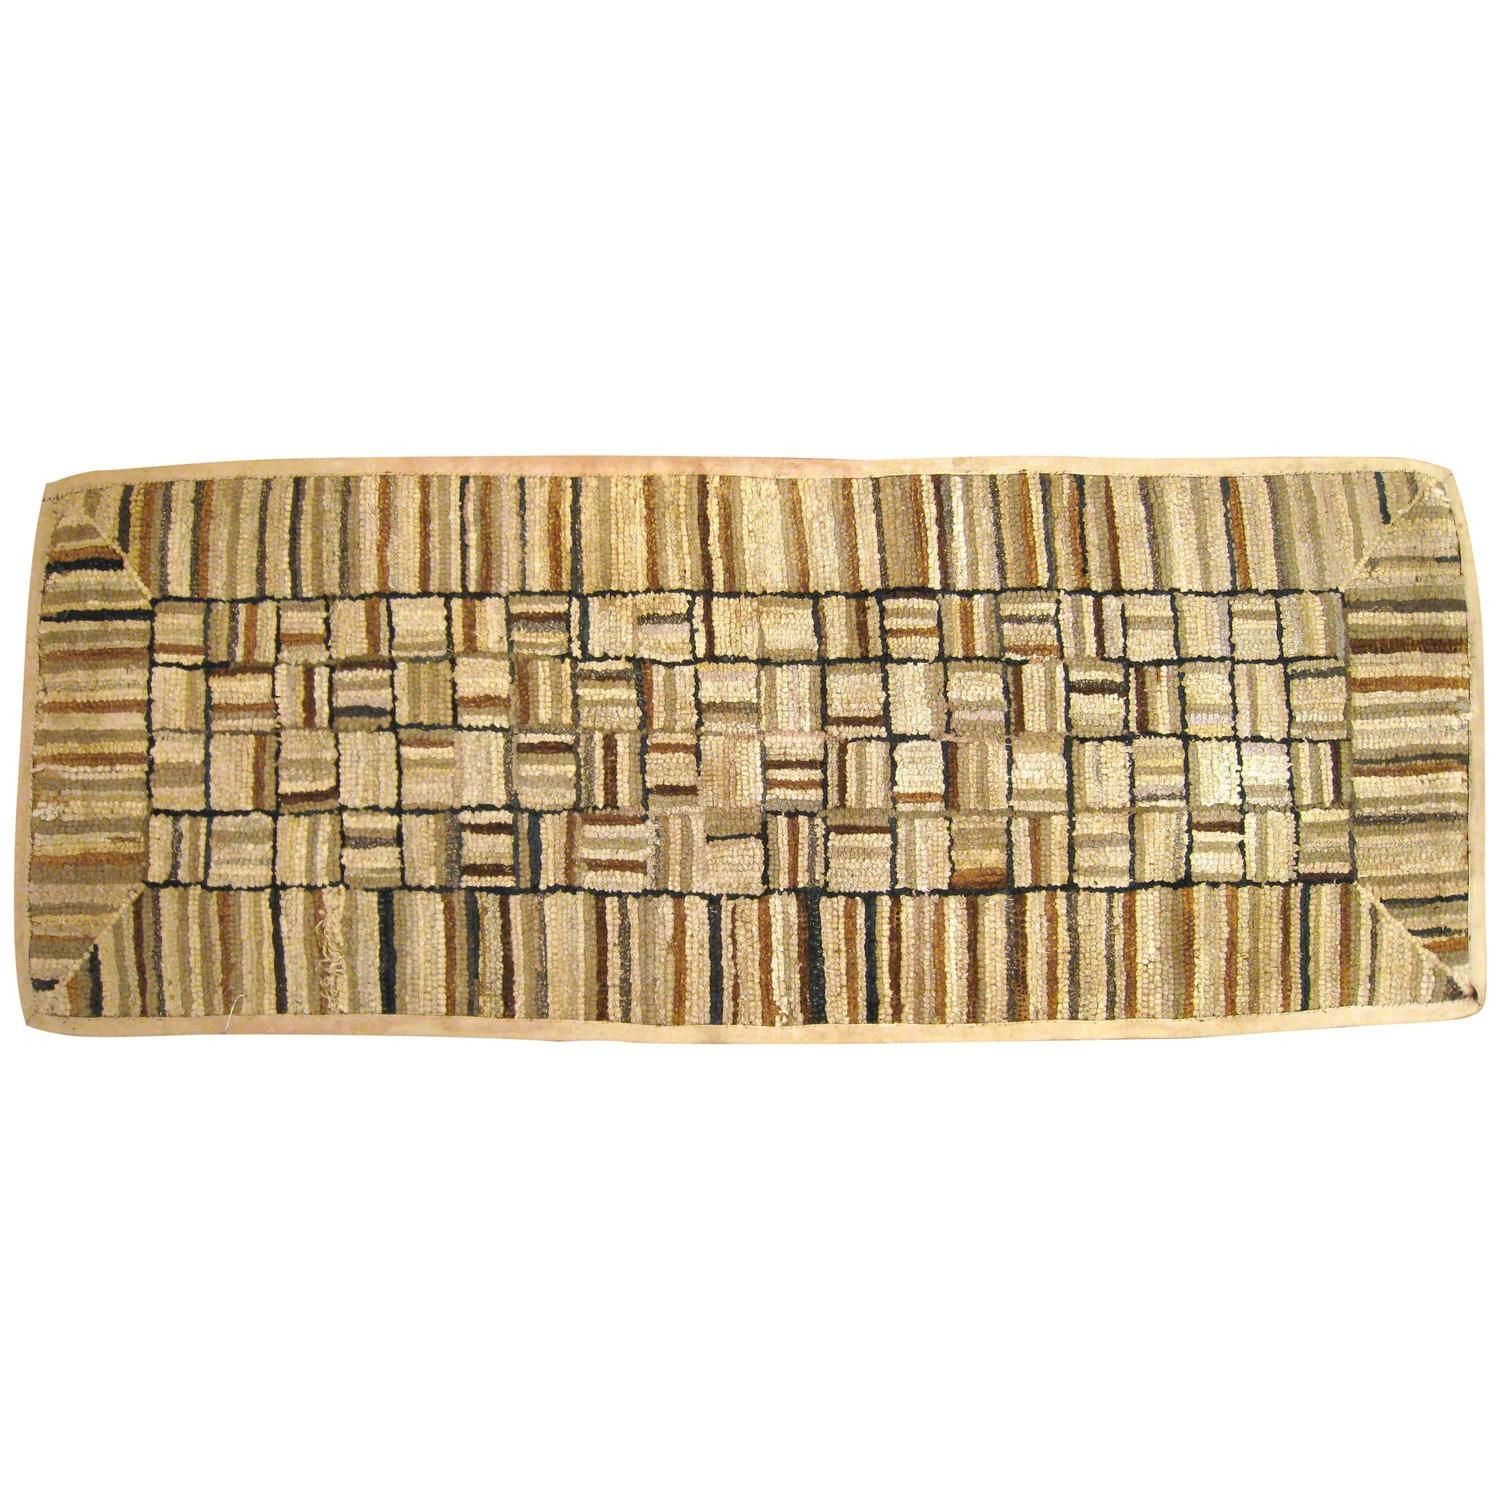 Vintage American Hooked Rug with Mosaic Design | From a unique collection of antique and modern north and south american rugs at https://www.1stdibs.com/furniture/rugs-carpets/north-and-south-american/